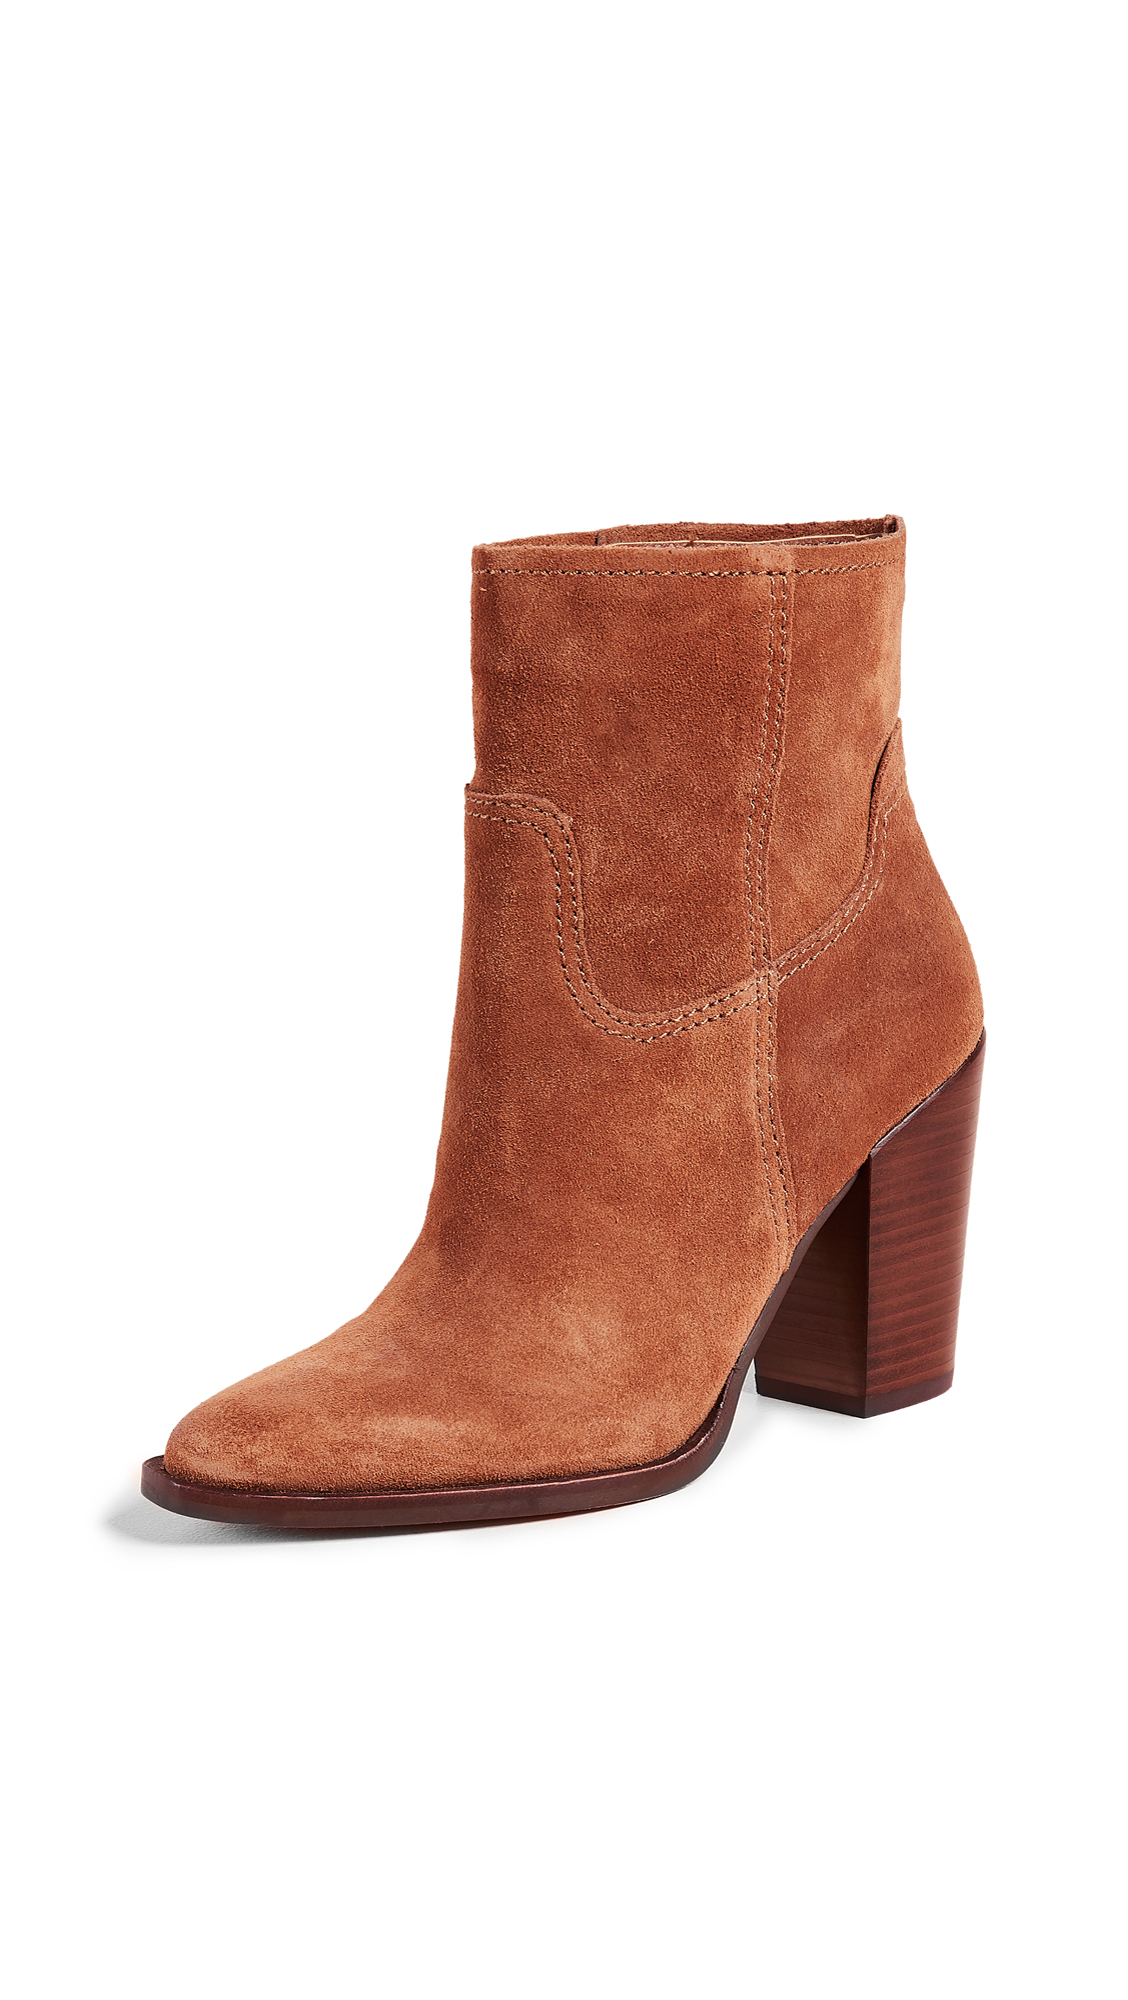 Dolce Vita Kelani Western Booties - Brown